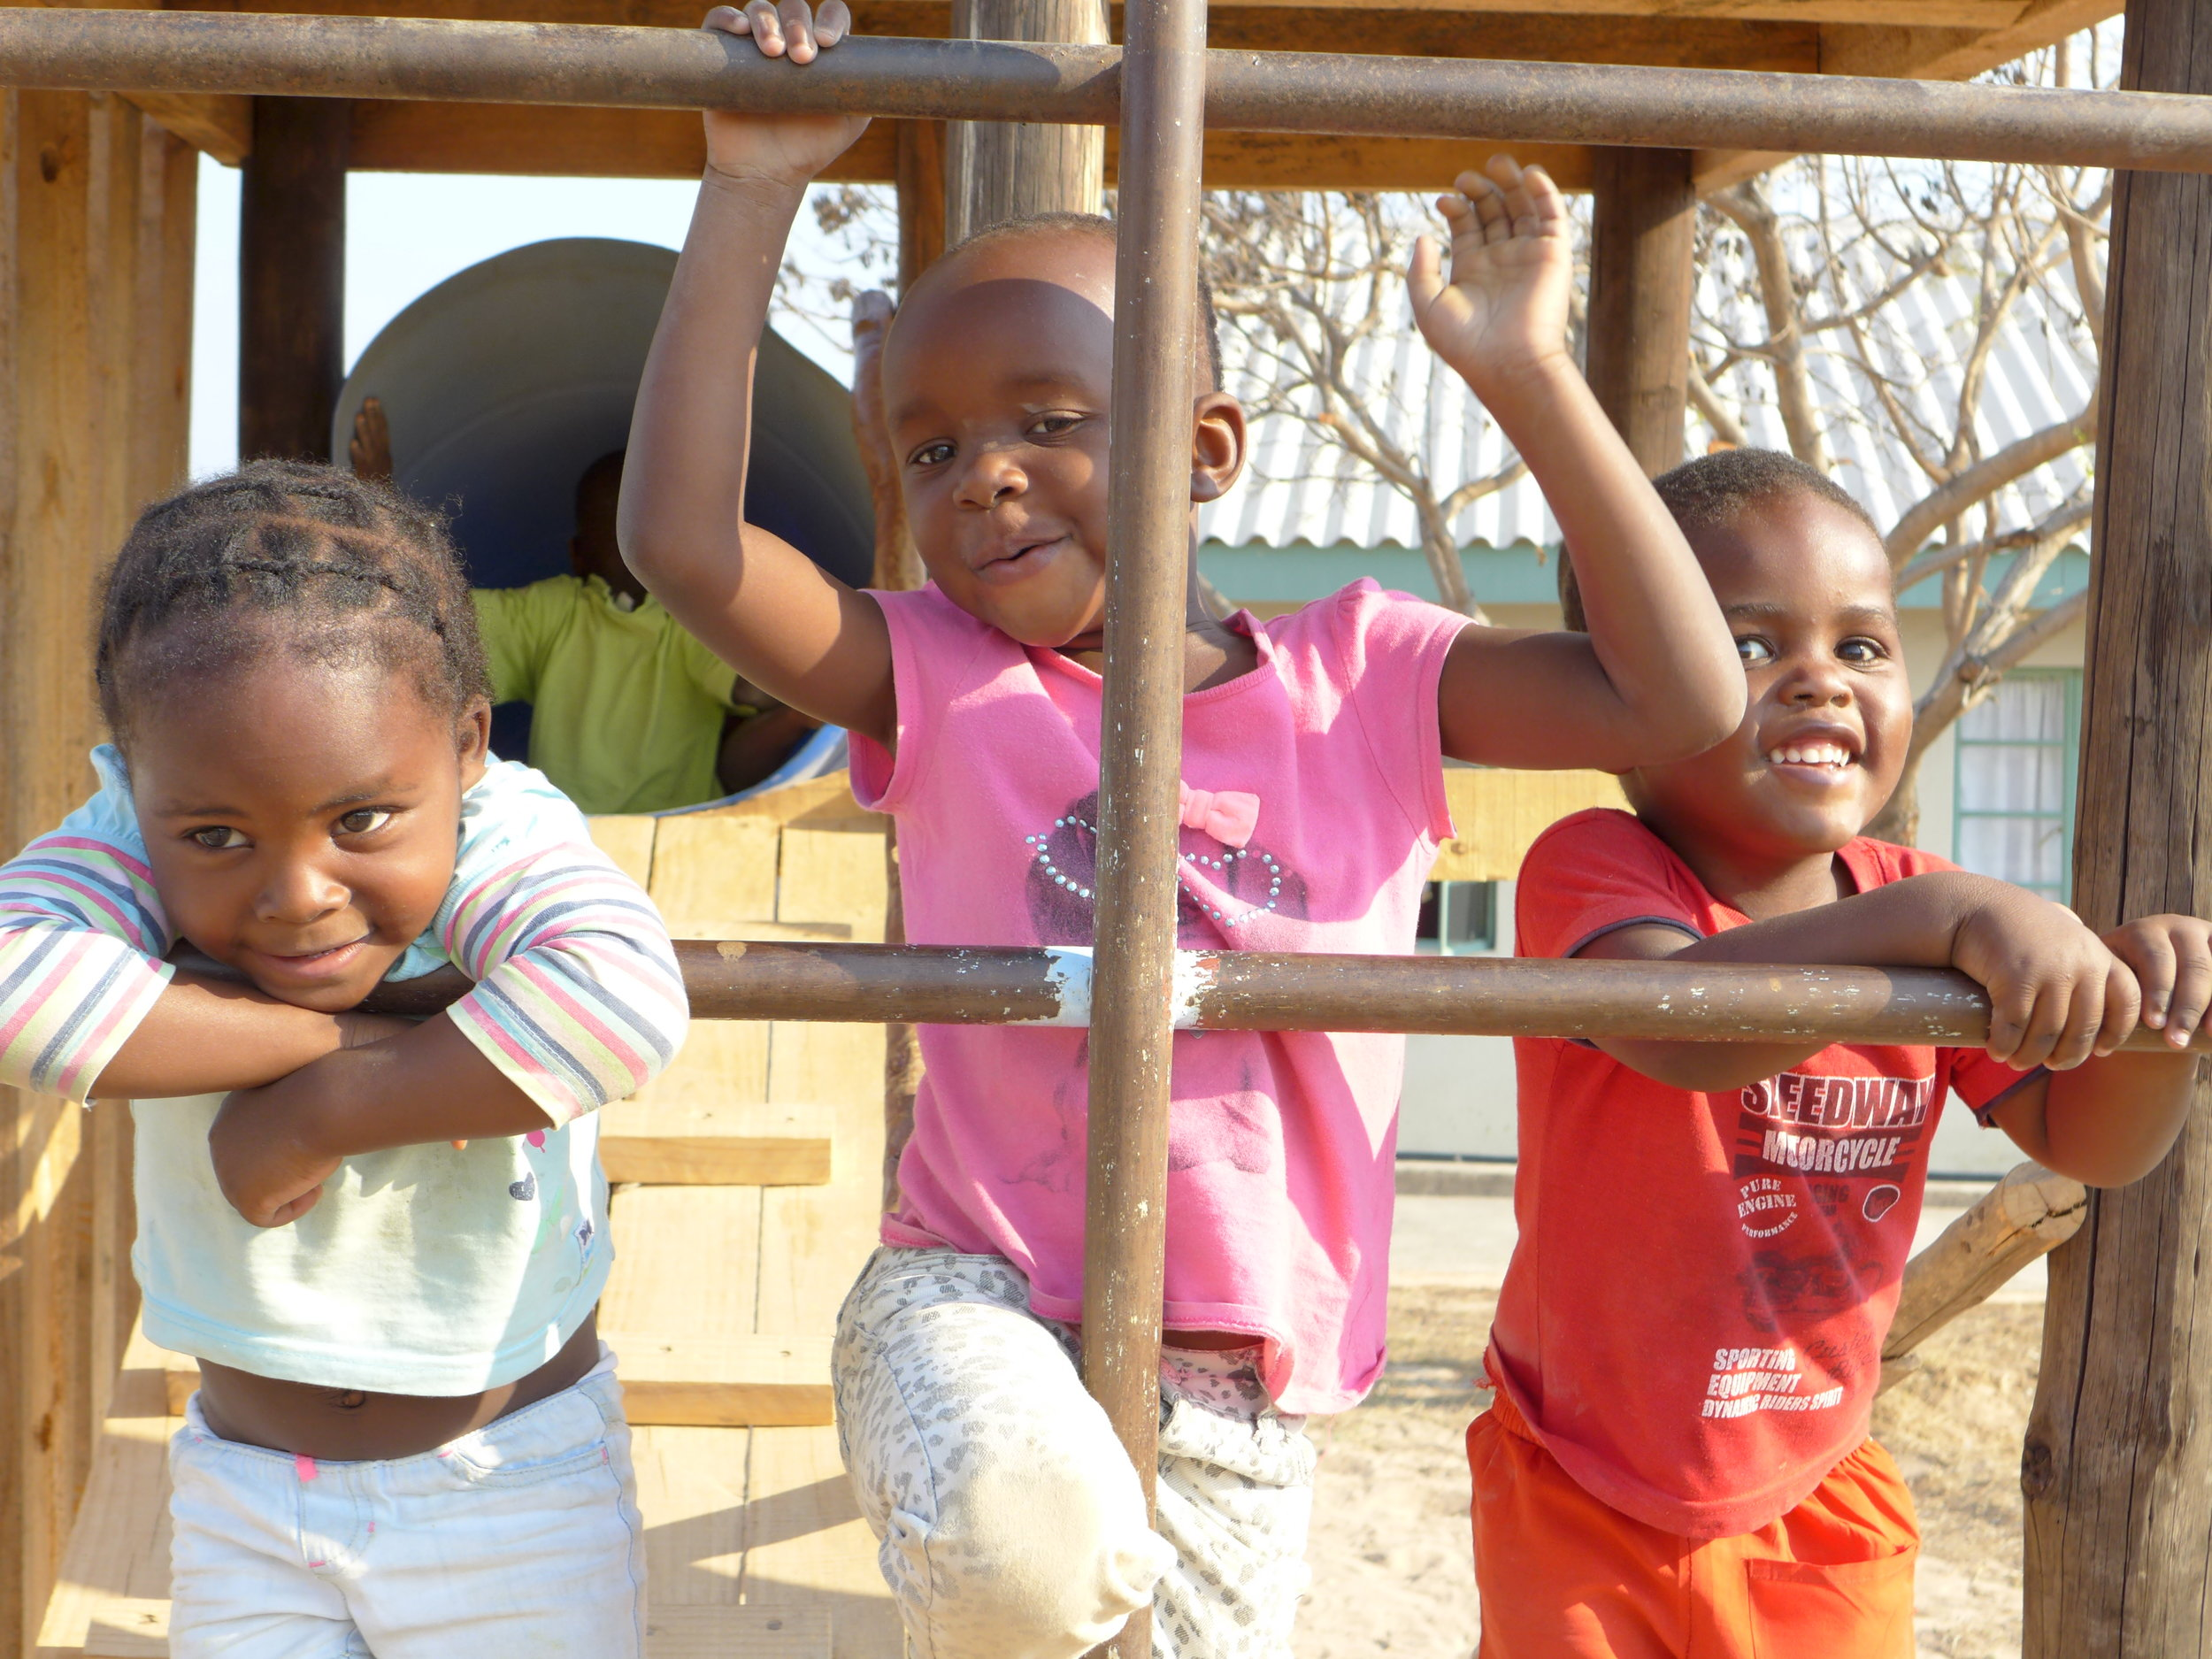 The children at Kuda Vana enjoy playing on our playground - an activity every child deserves